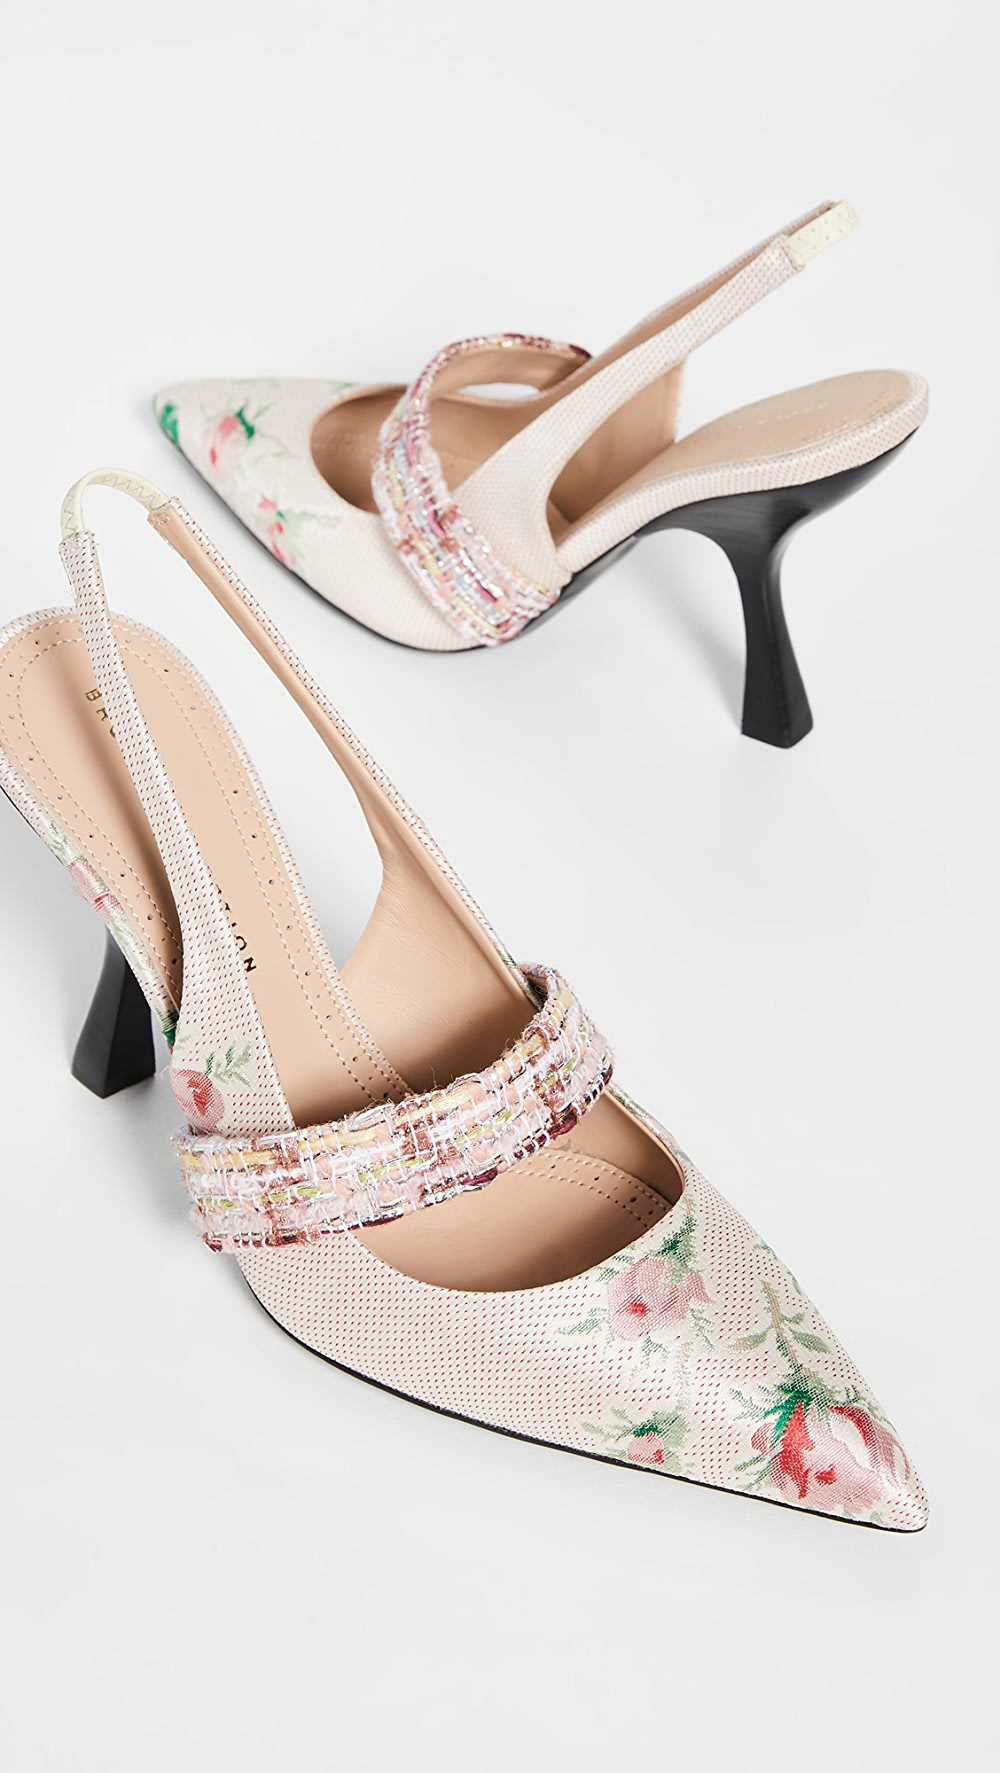 Considerate Brock Collection - Slingback Pumps Removing Obstruction